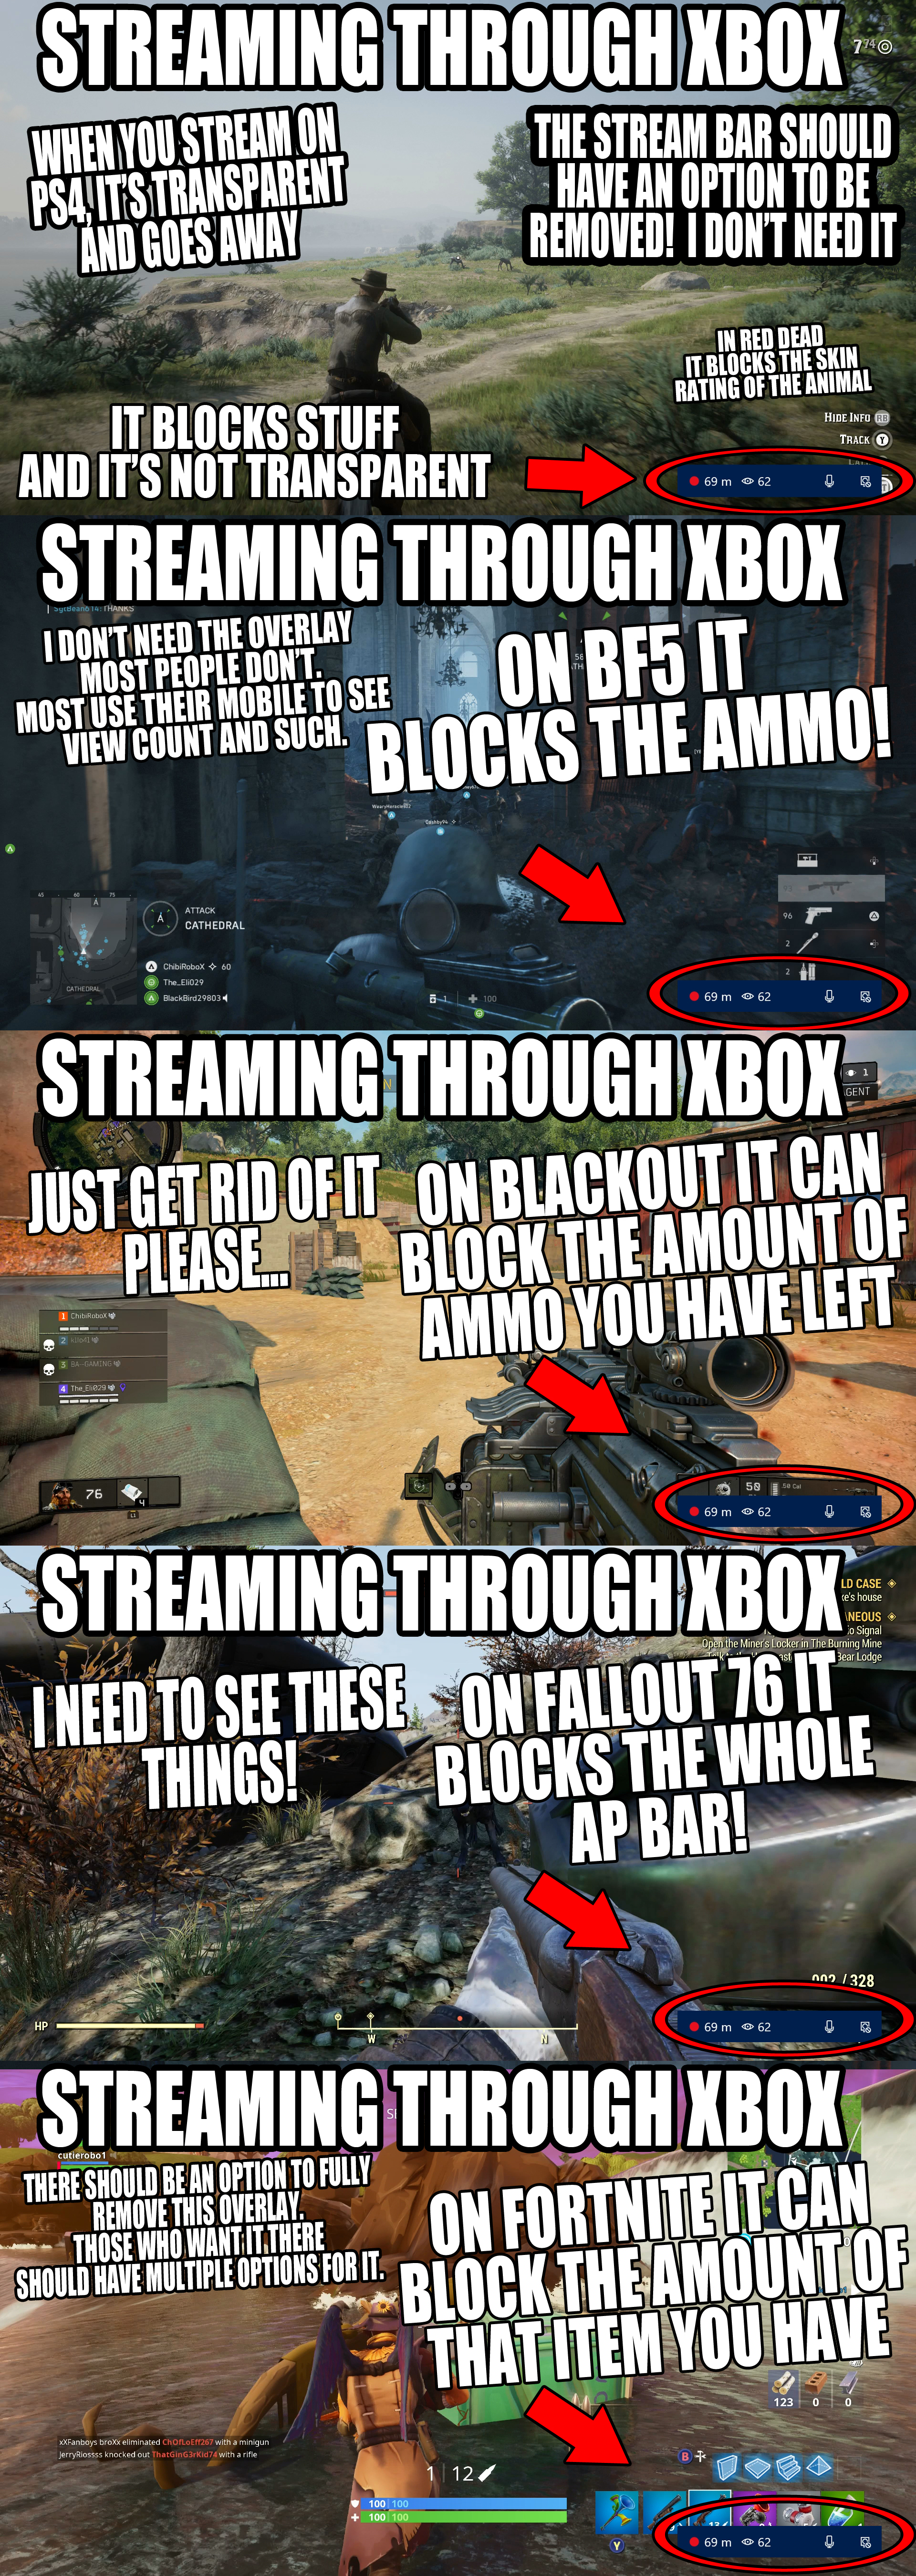 Twitch Streaming on Xbox needs an Option to REMOVE the